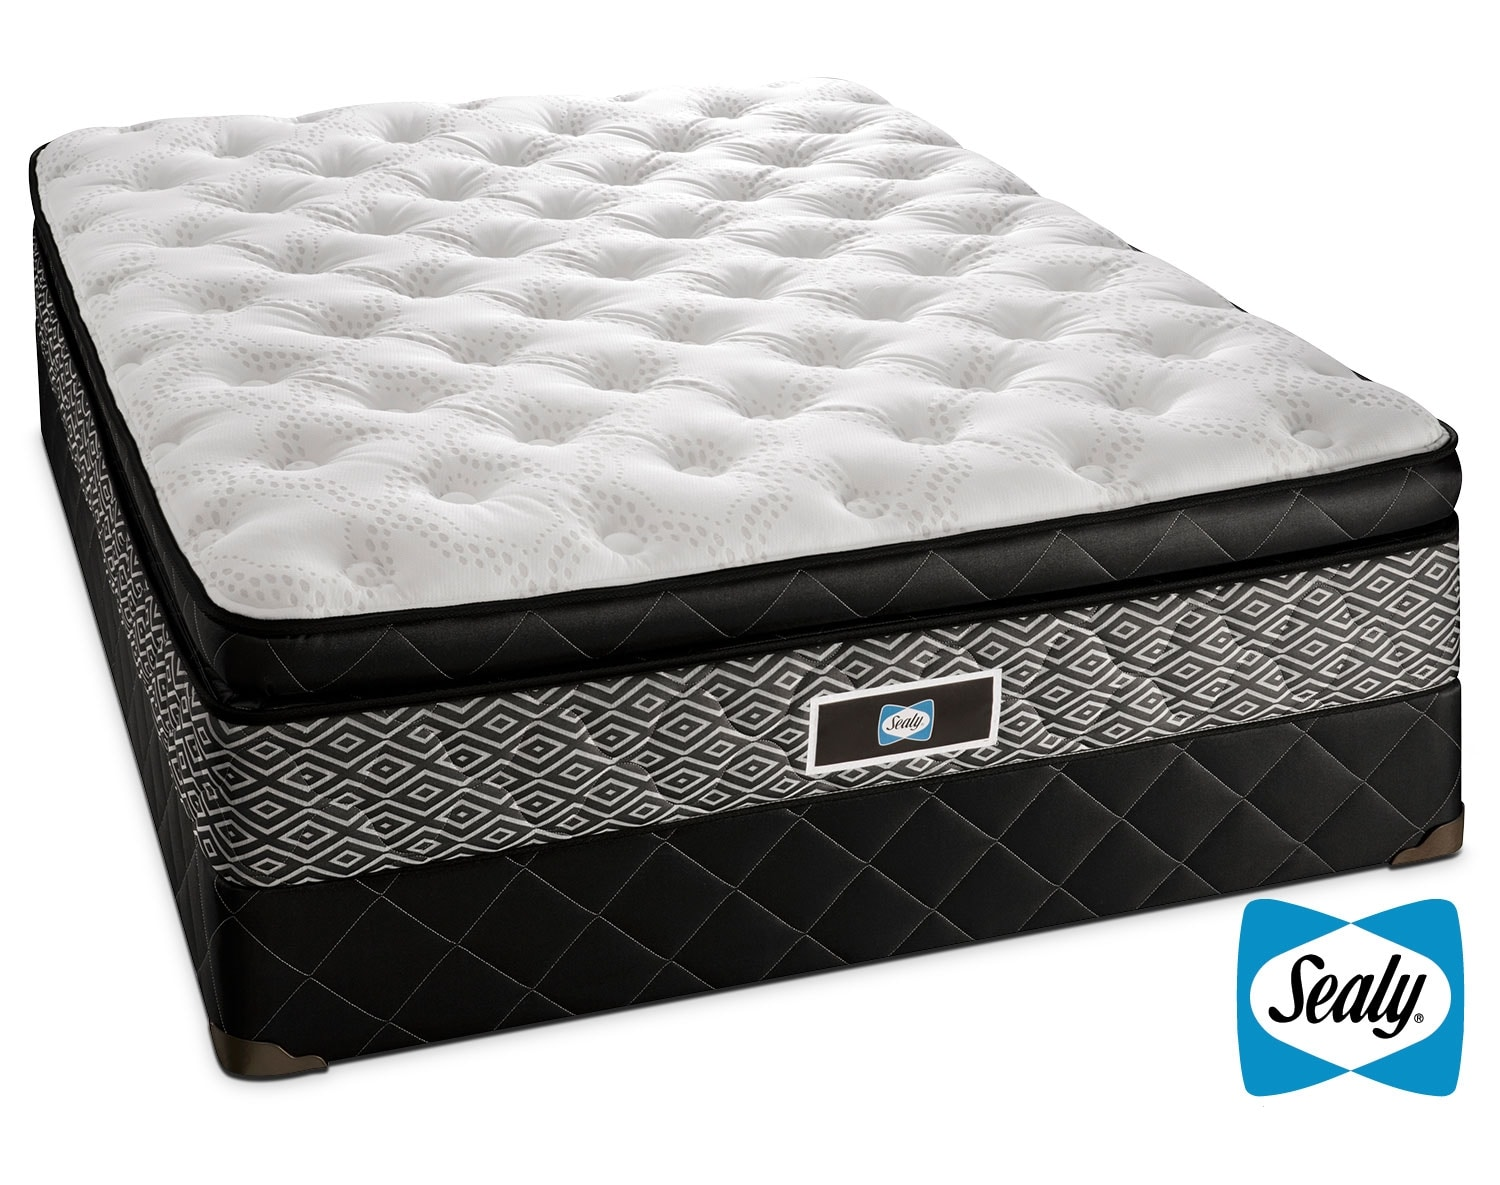 Sealy Echo Firm Mattress Collection